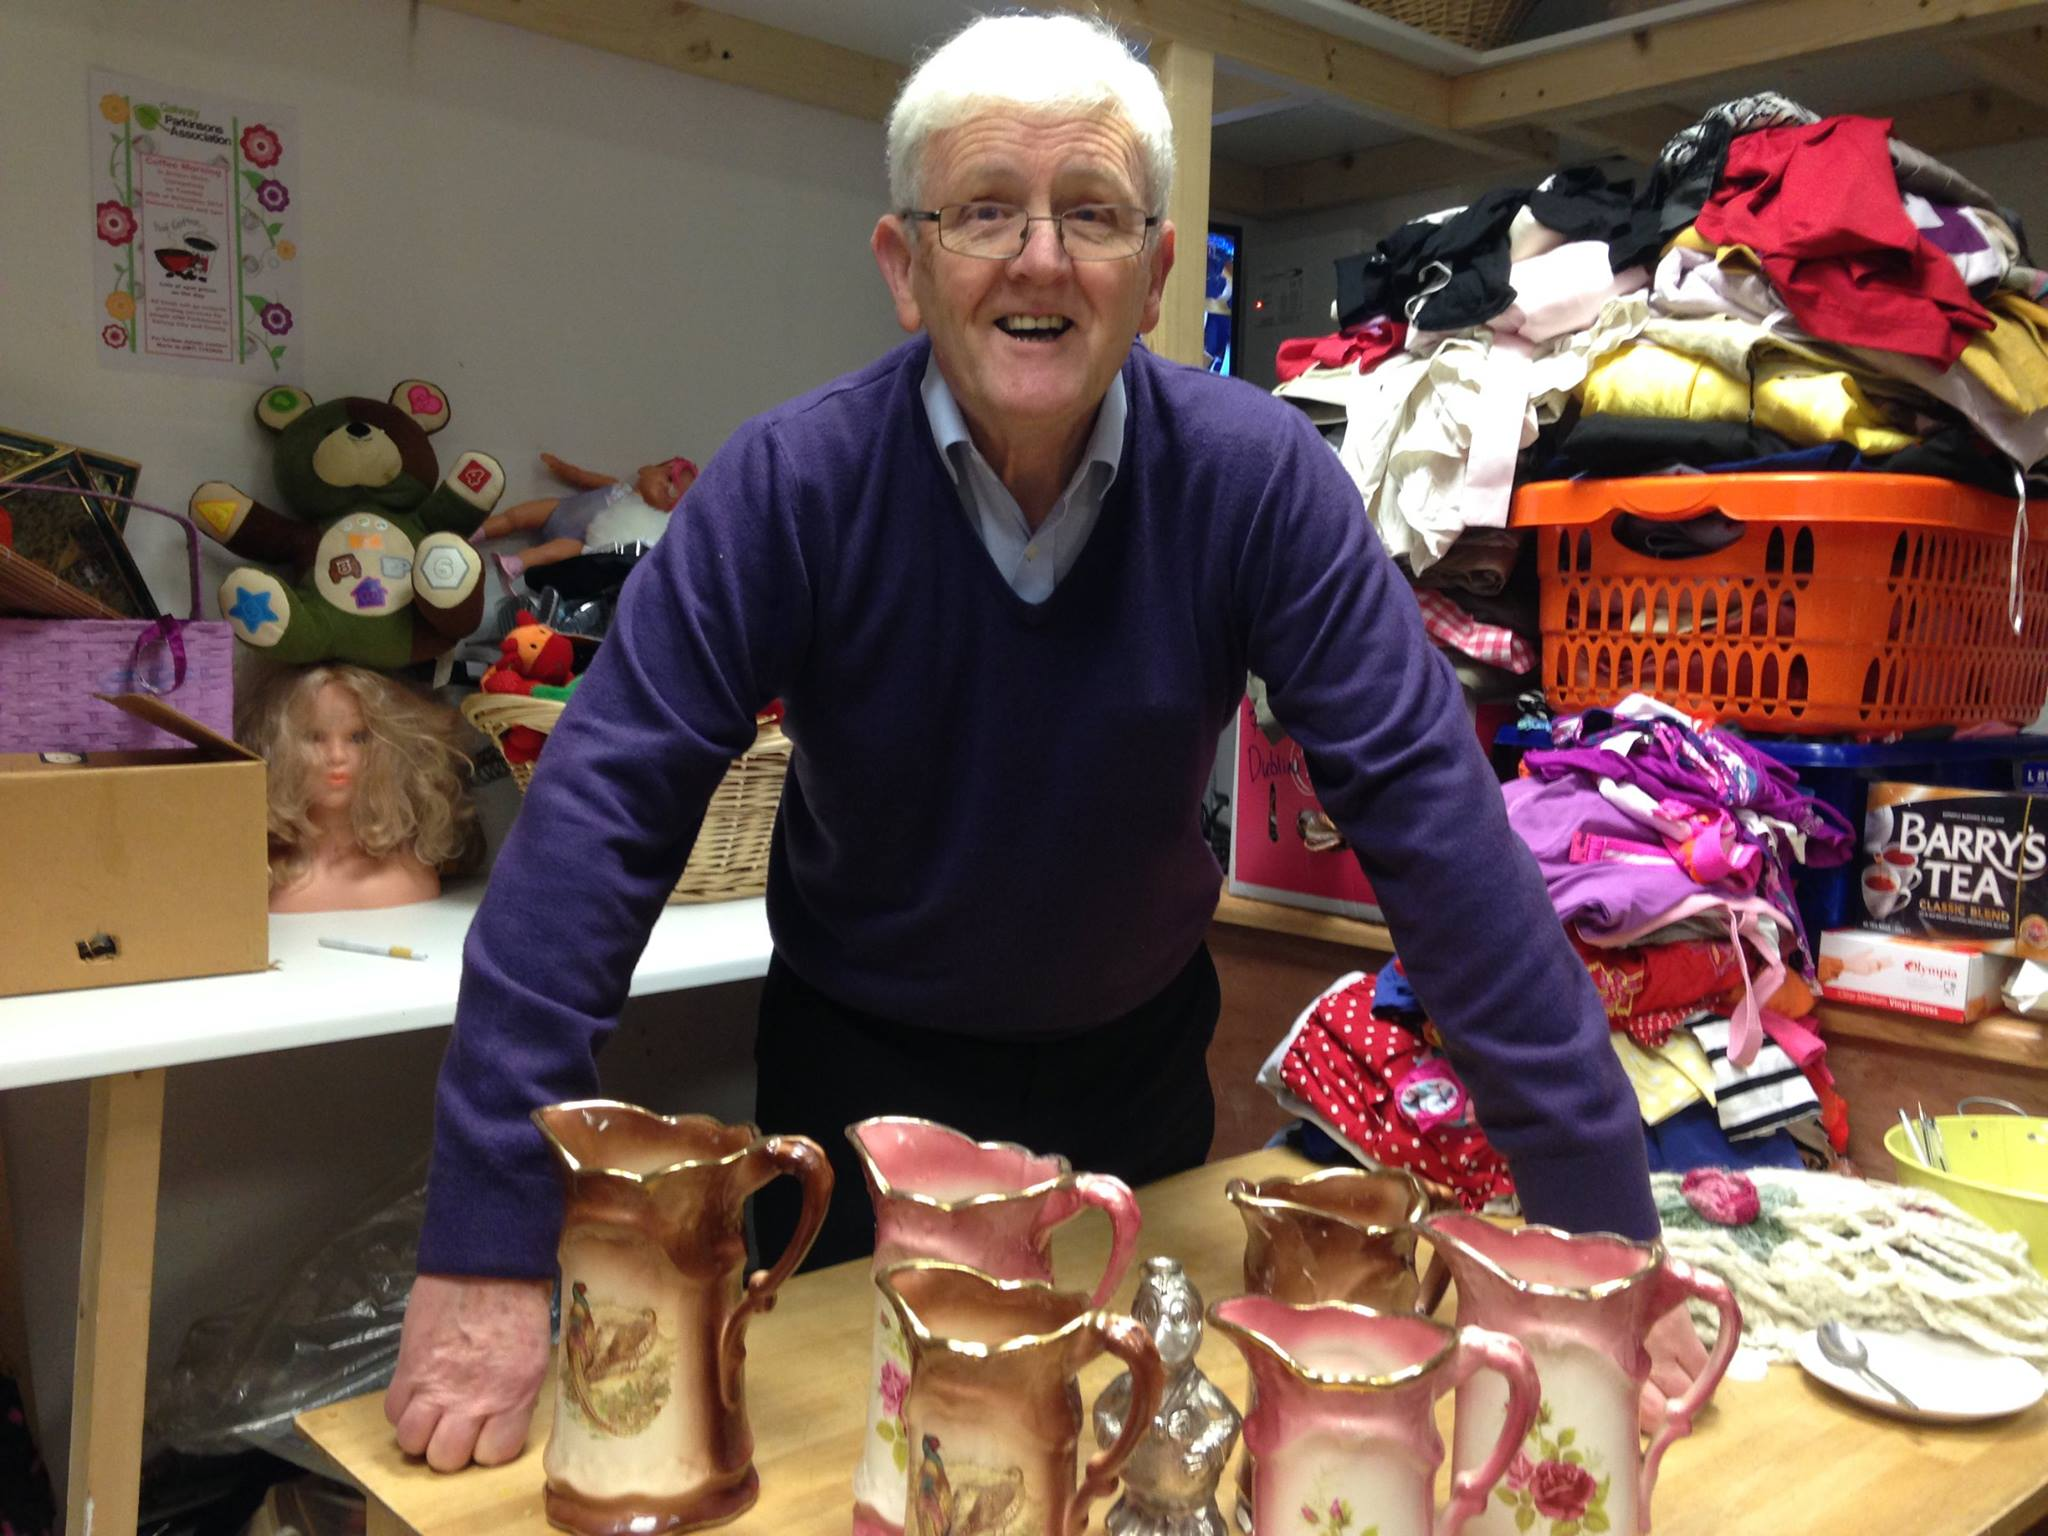 Tony Doyle, Chairperson of 'Never Too Old' Charity Shop in Cois Chláir pictured recently by Josette Farrell.